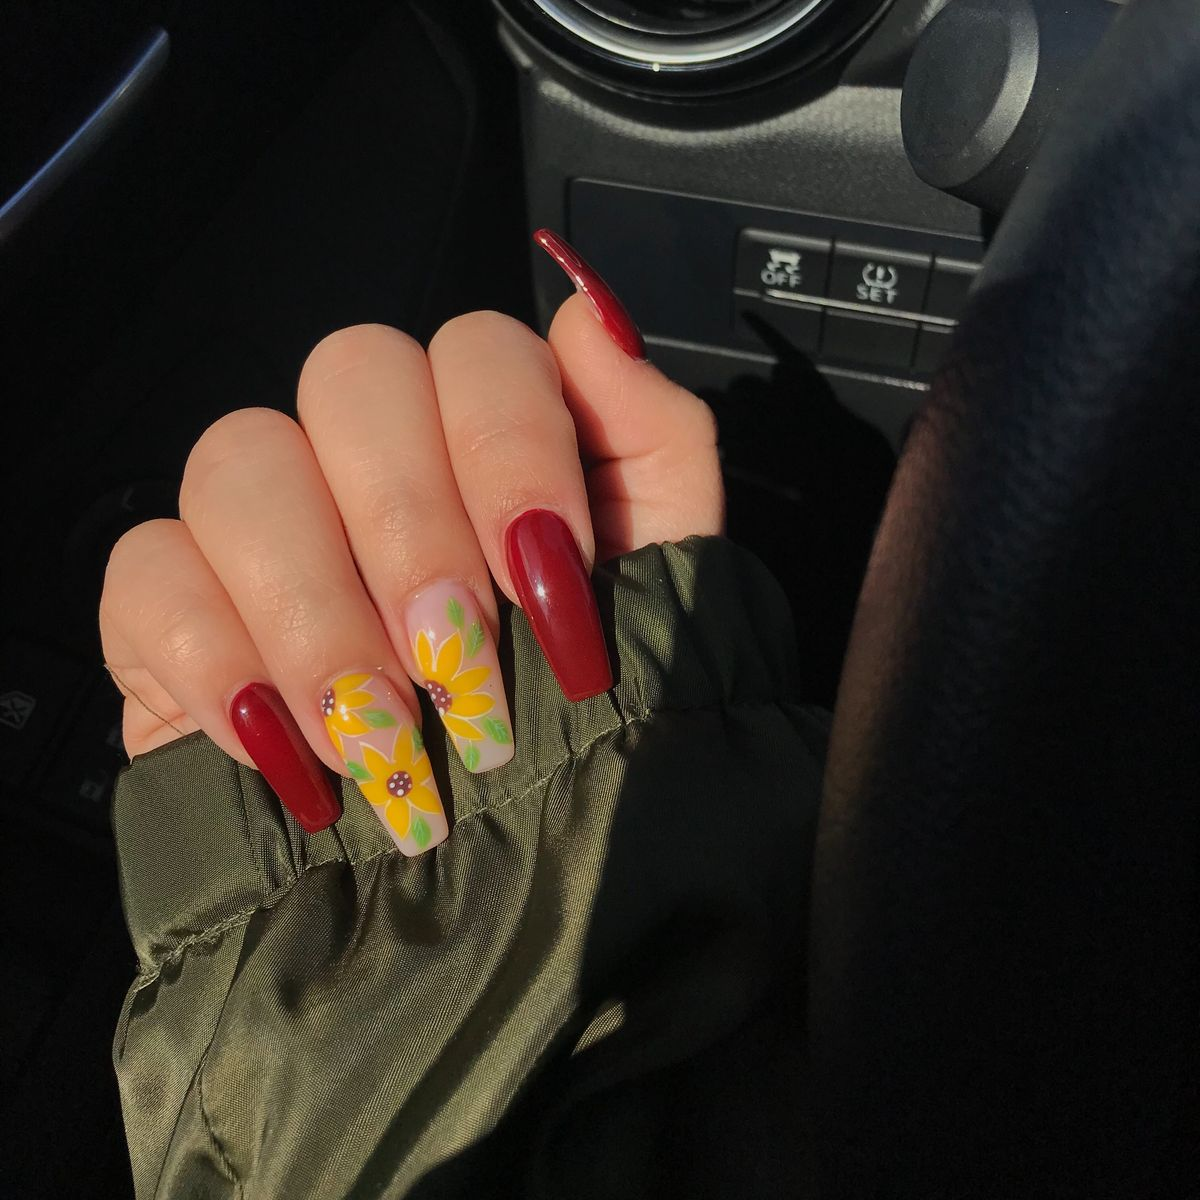 Sunflowers and red acrylic coffin nails